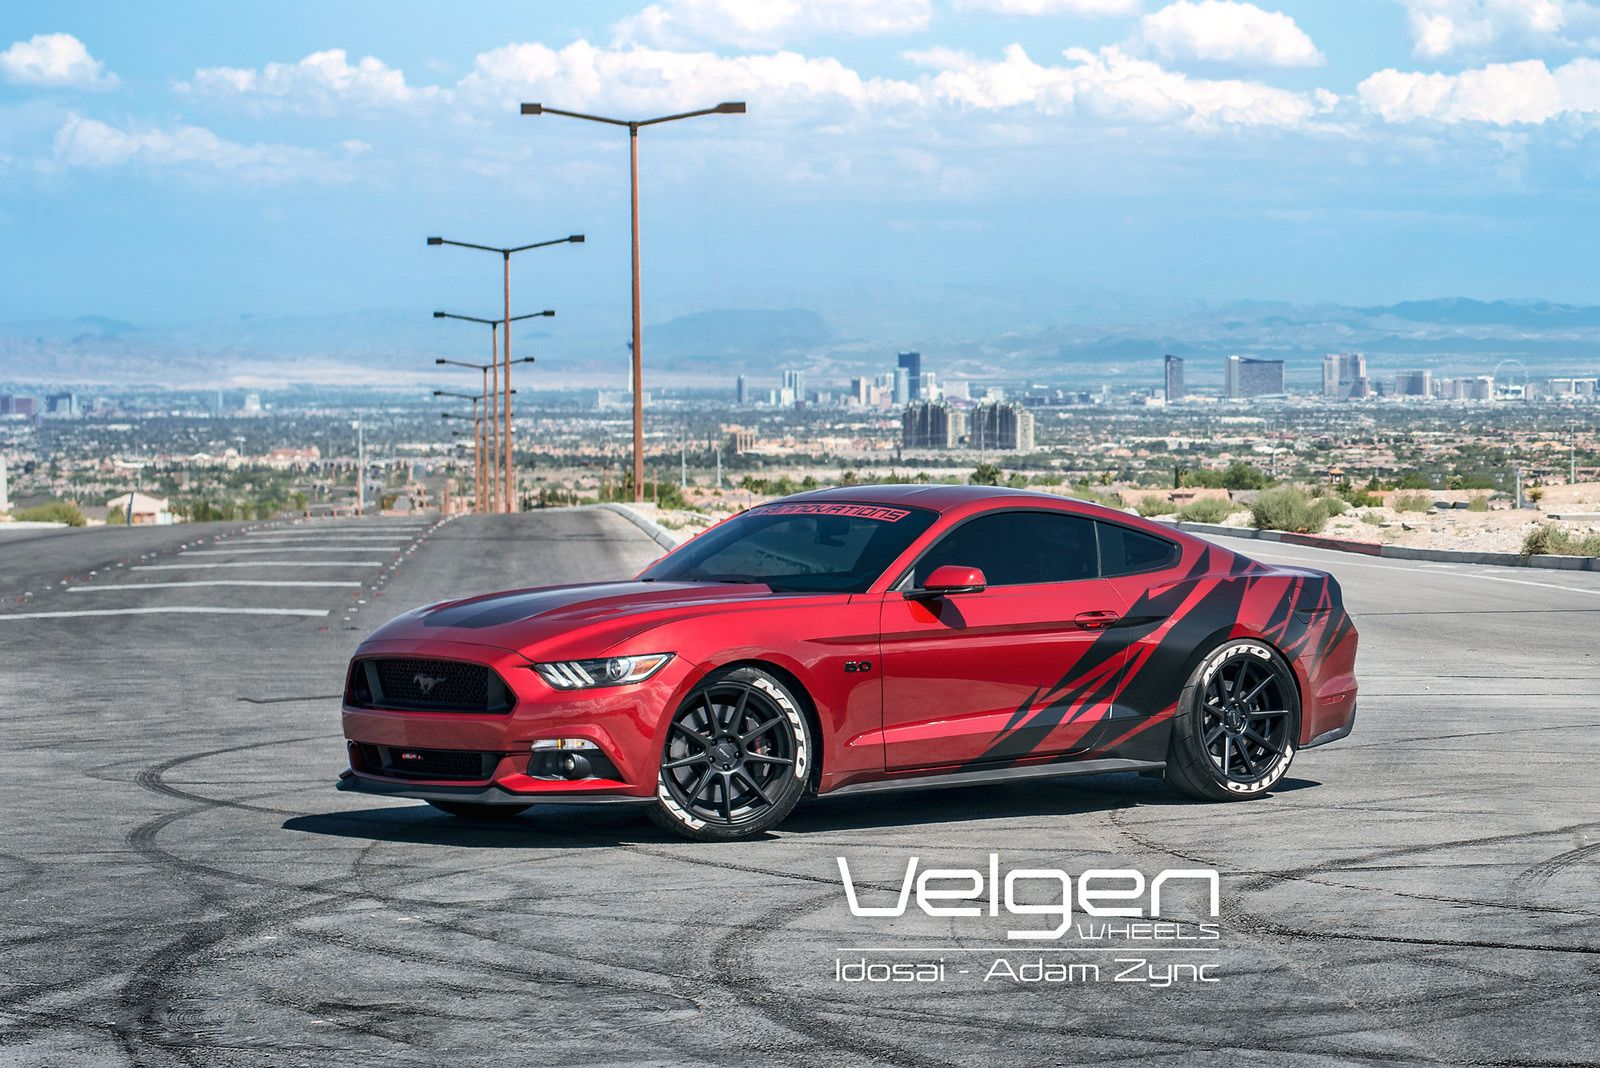 Ford Mustang S550 Wallpaper Hd Resolution Mustang Red Mustang Ford Mustang